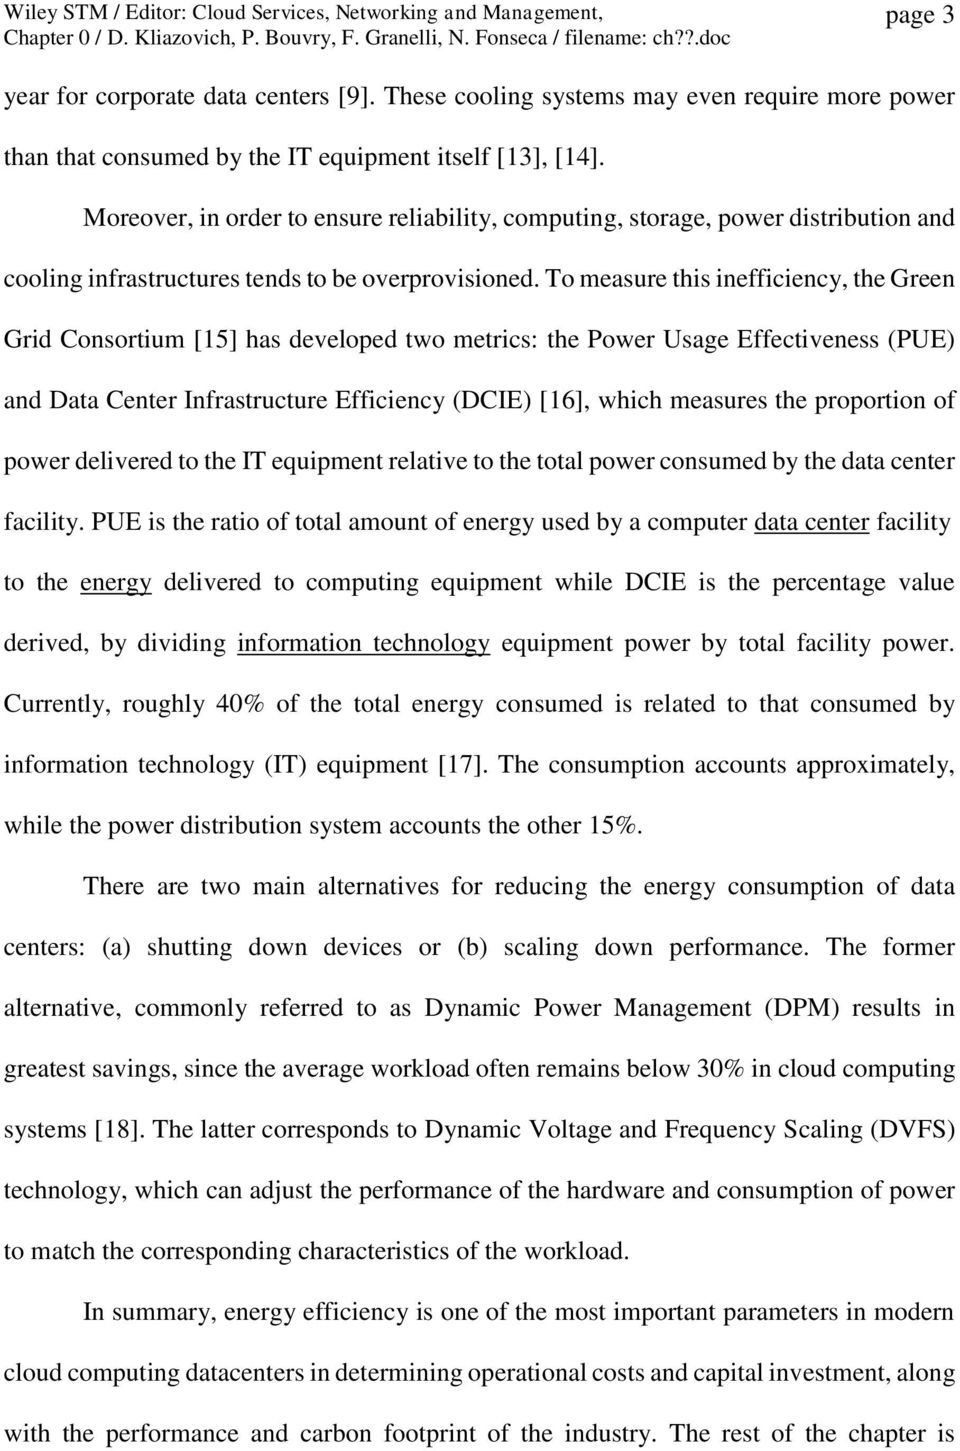 To measure this inefficiency, the Green Grid Consortium [15] has developed two metrics: the Power Usage Effectiveness (PUE) and Data Center Infrastructure Efficiency (DCIE) [16], which measures the